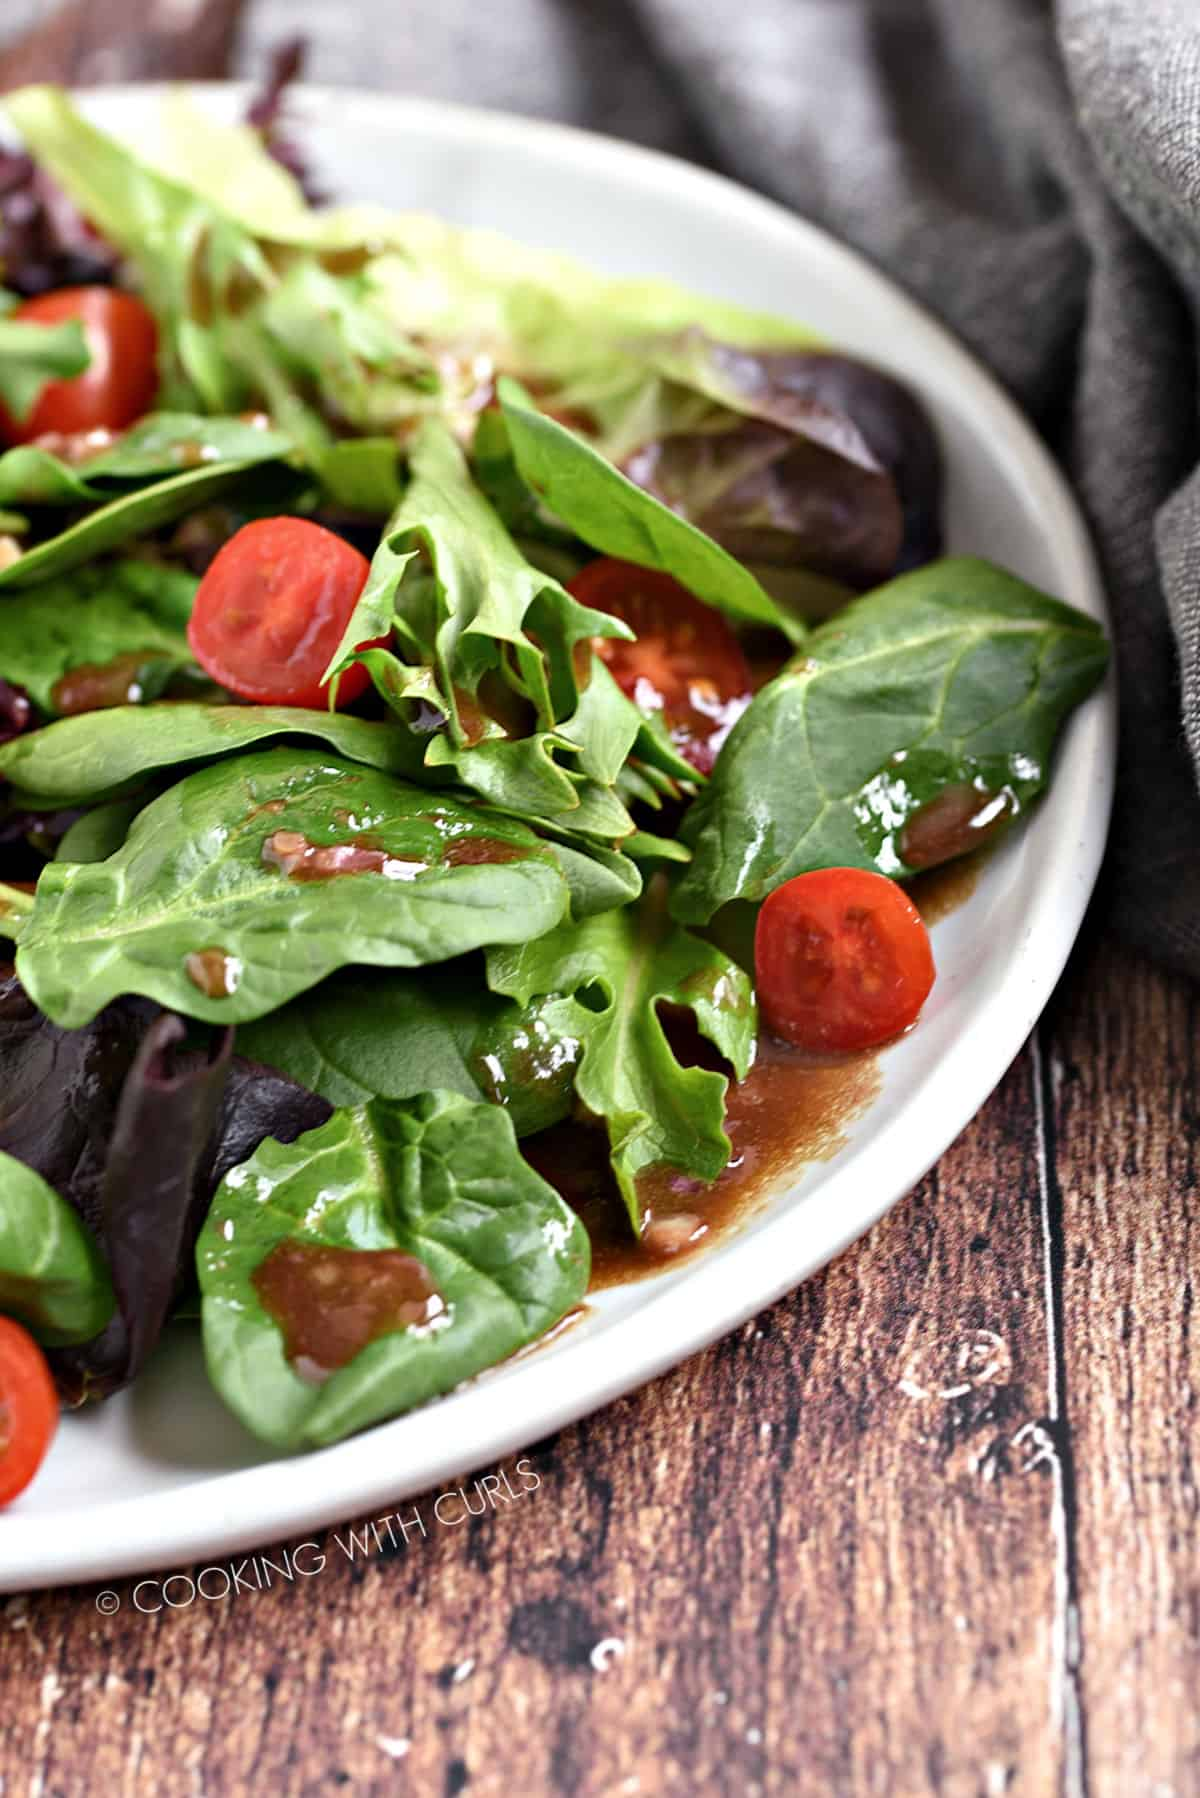 Side salad topped with Balsamic Vinaigrette and grape tomatoes.